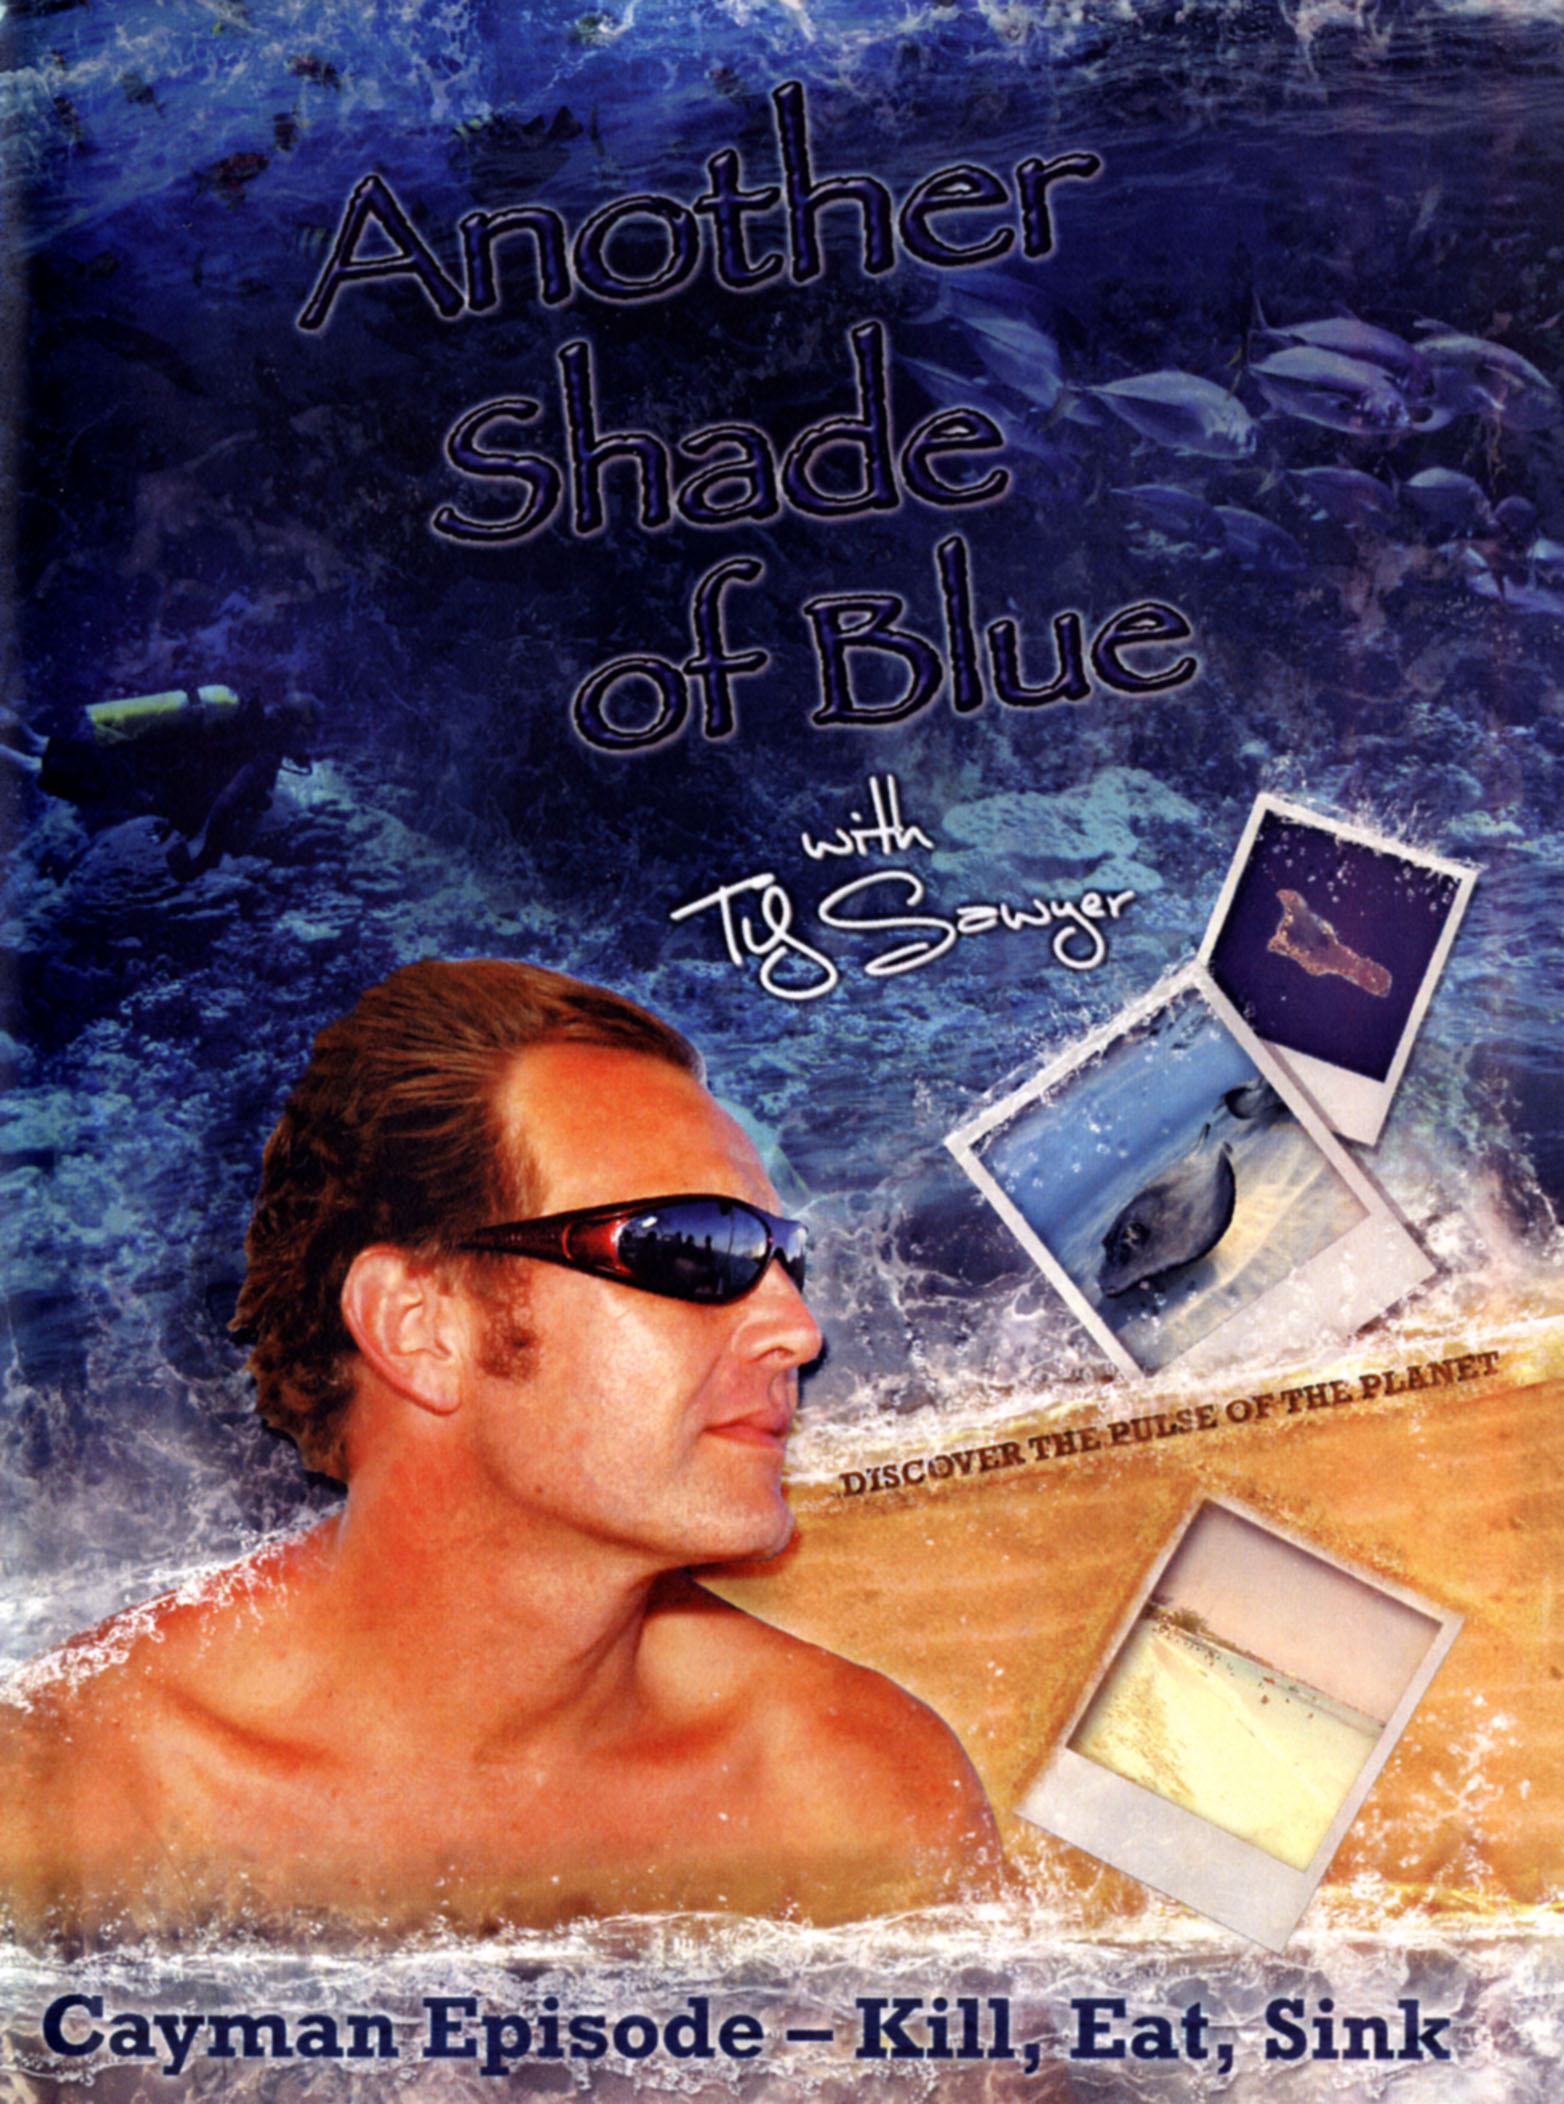 Another Shade of Blue: Cayman Episode - Kill, Eat, Sink